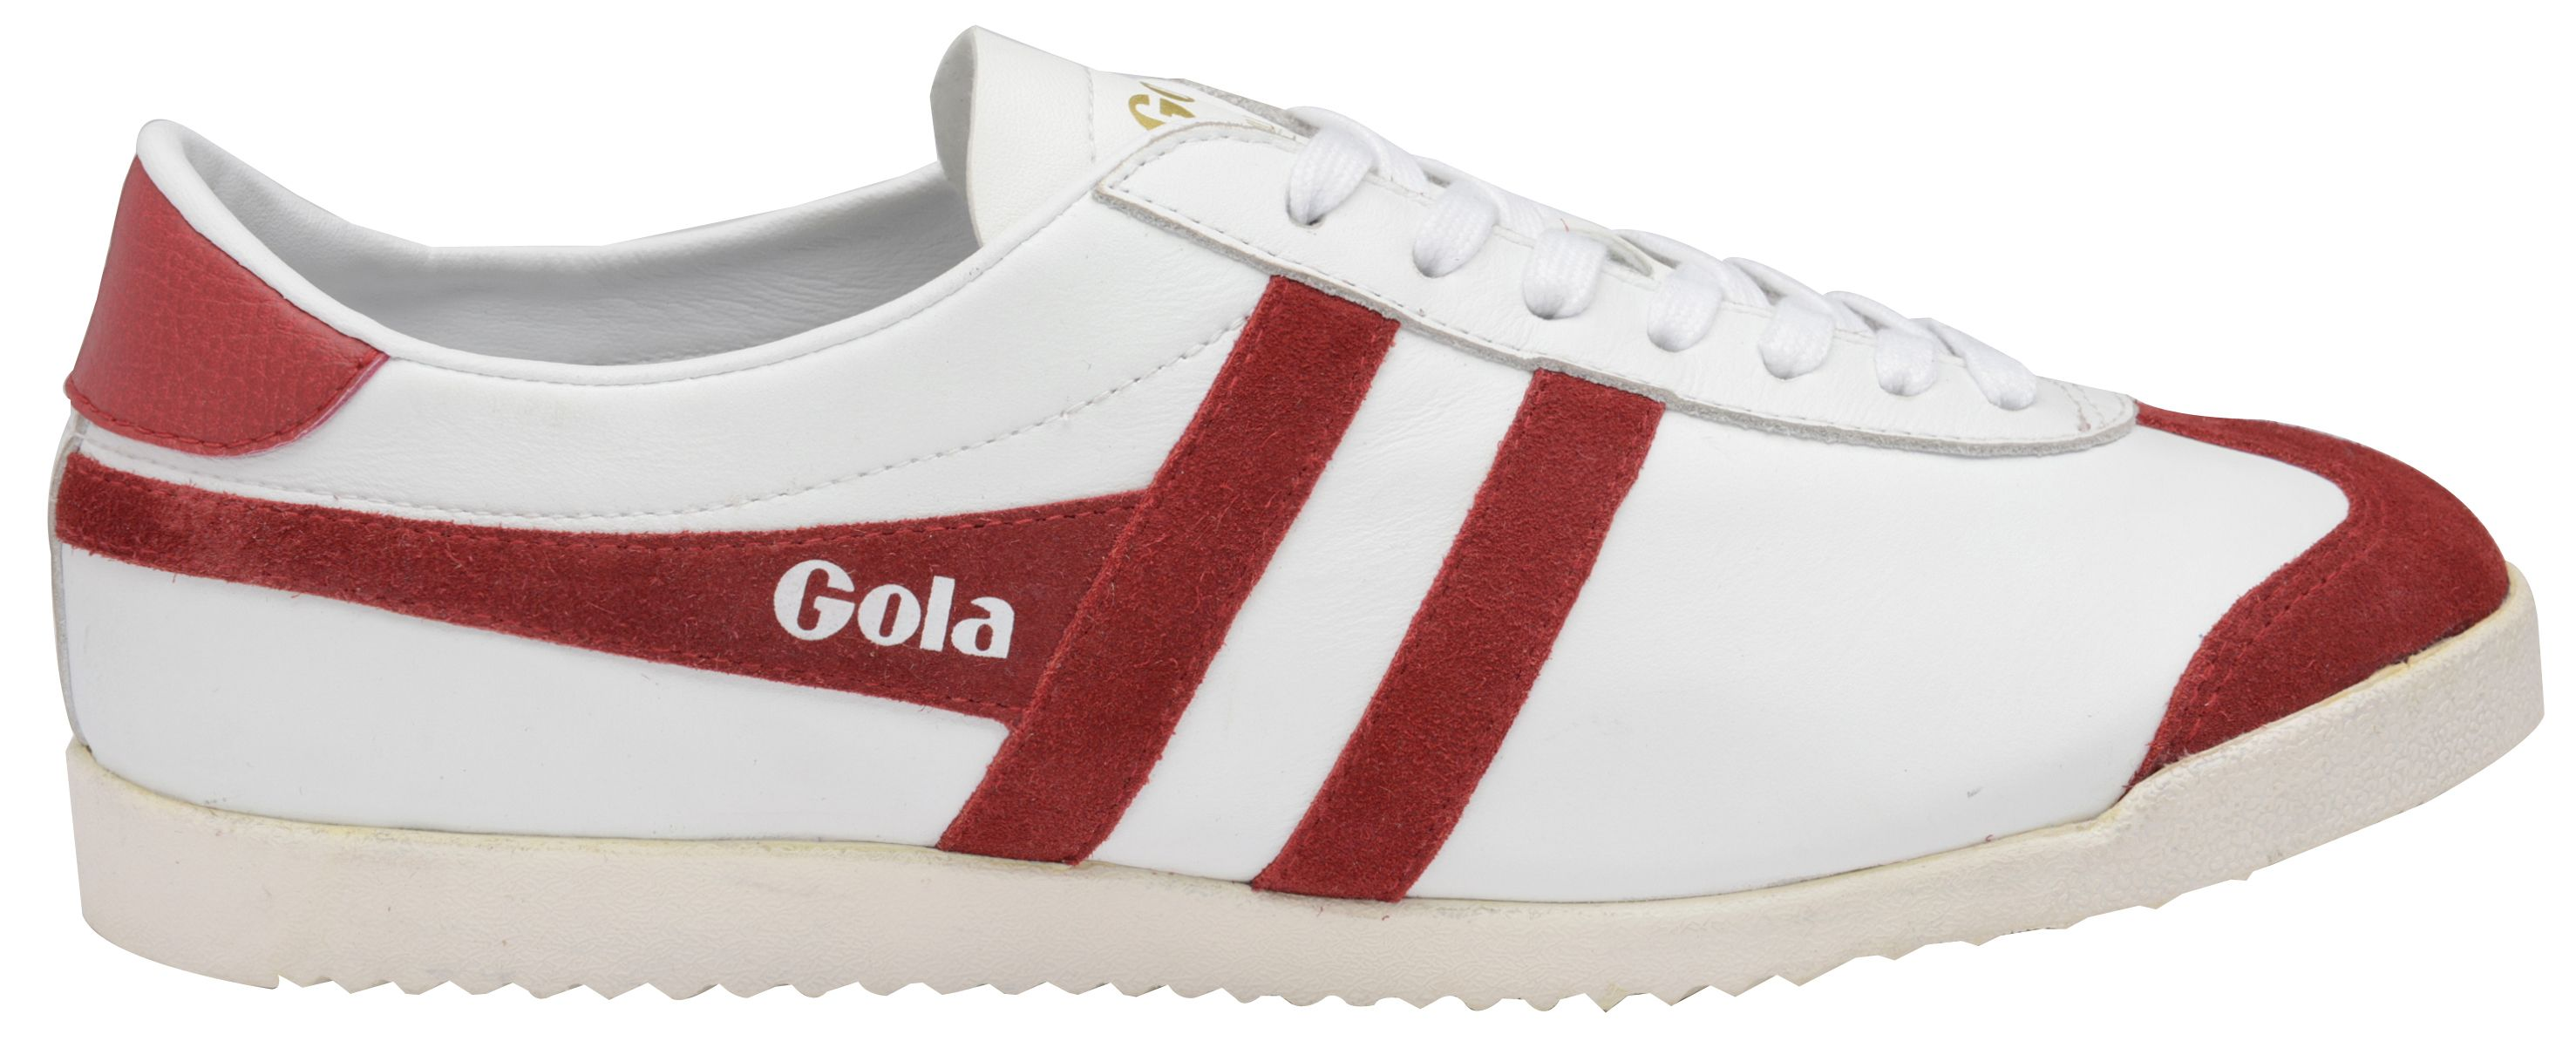 Gola Gola Bullet leather lace up trainers, Multi-Coloured